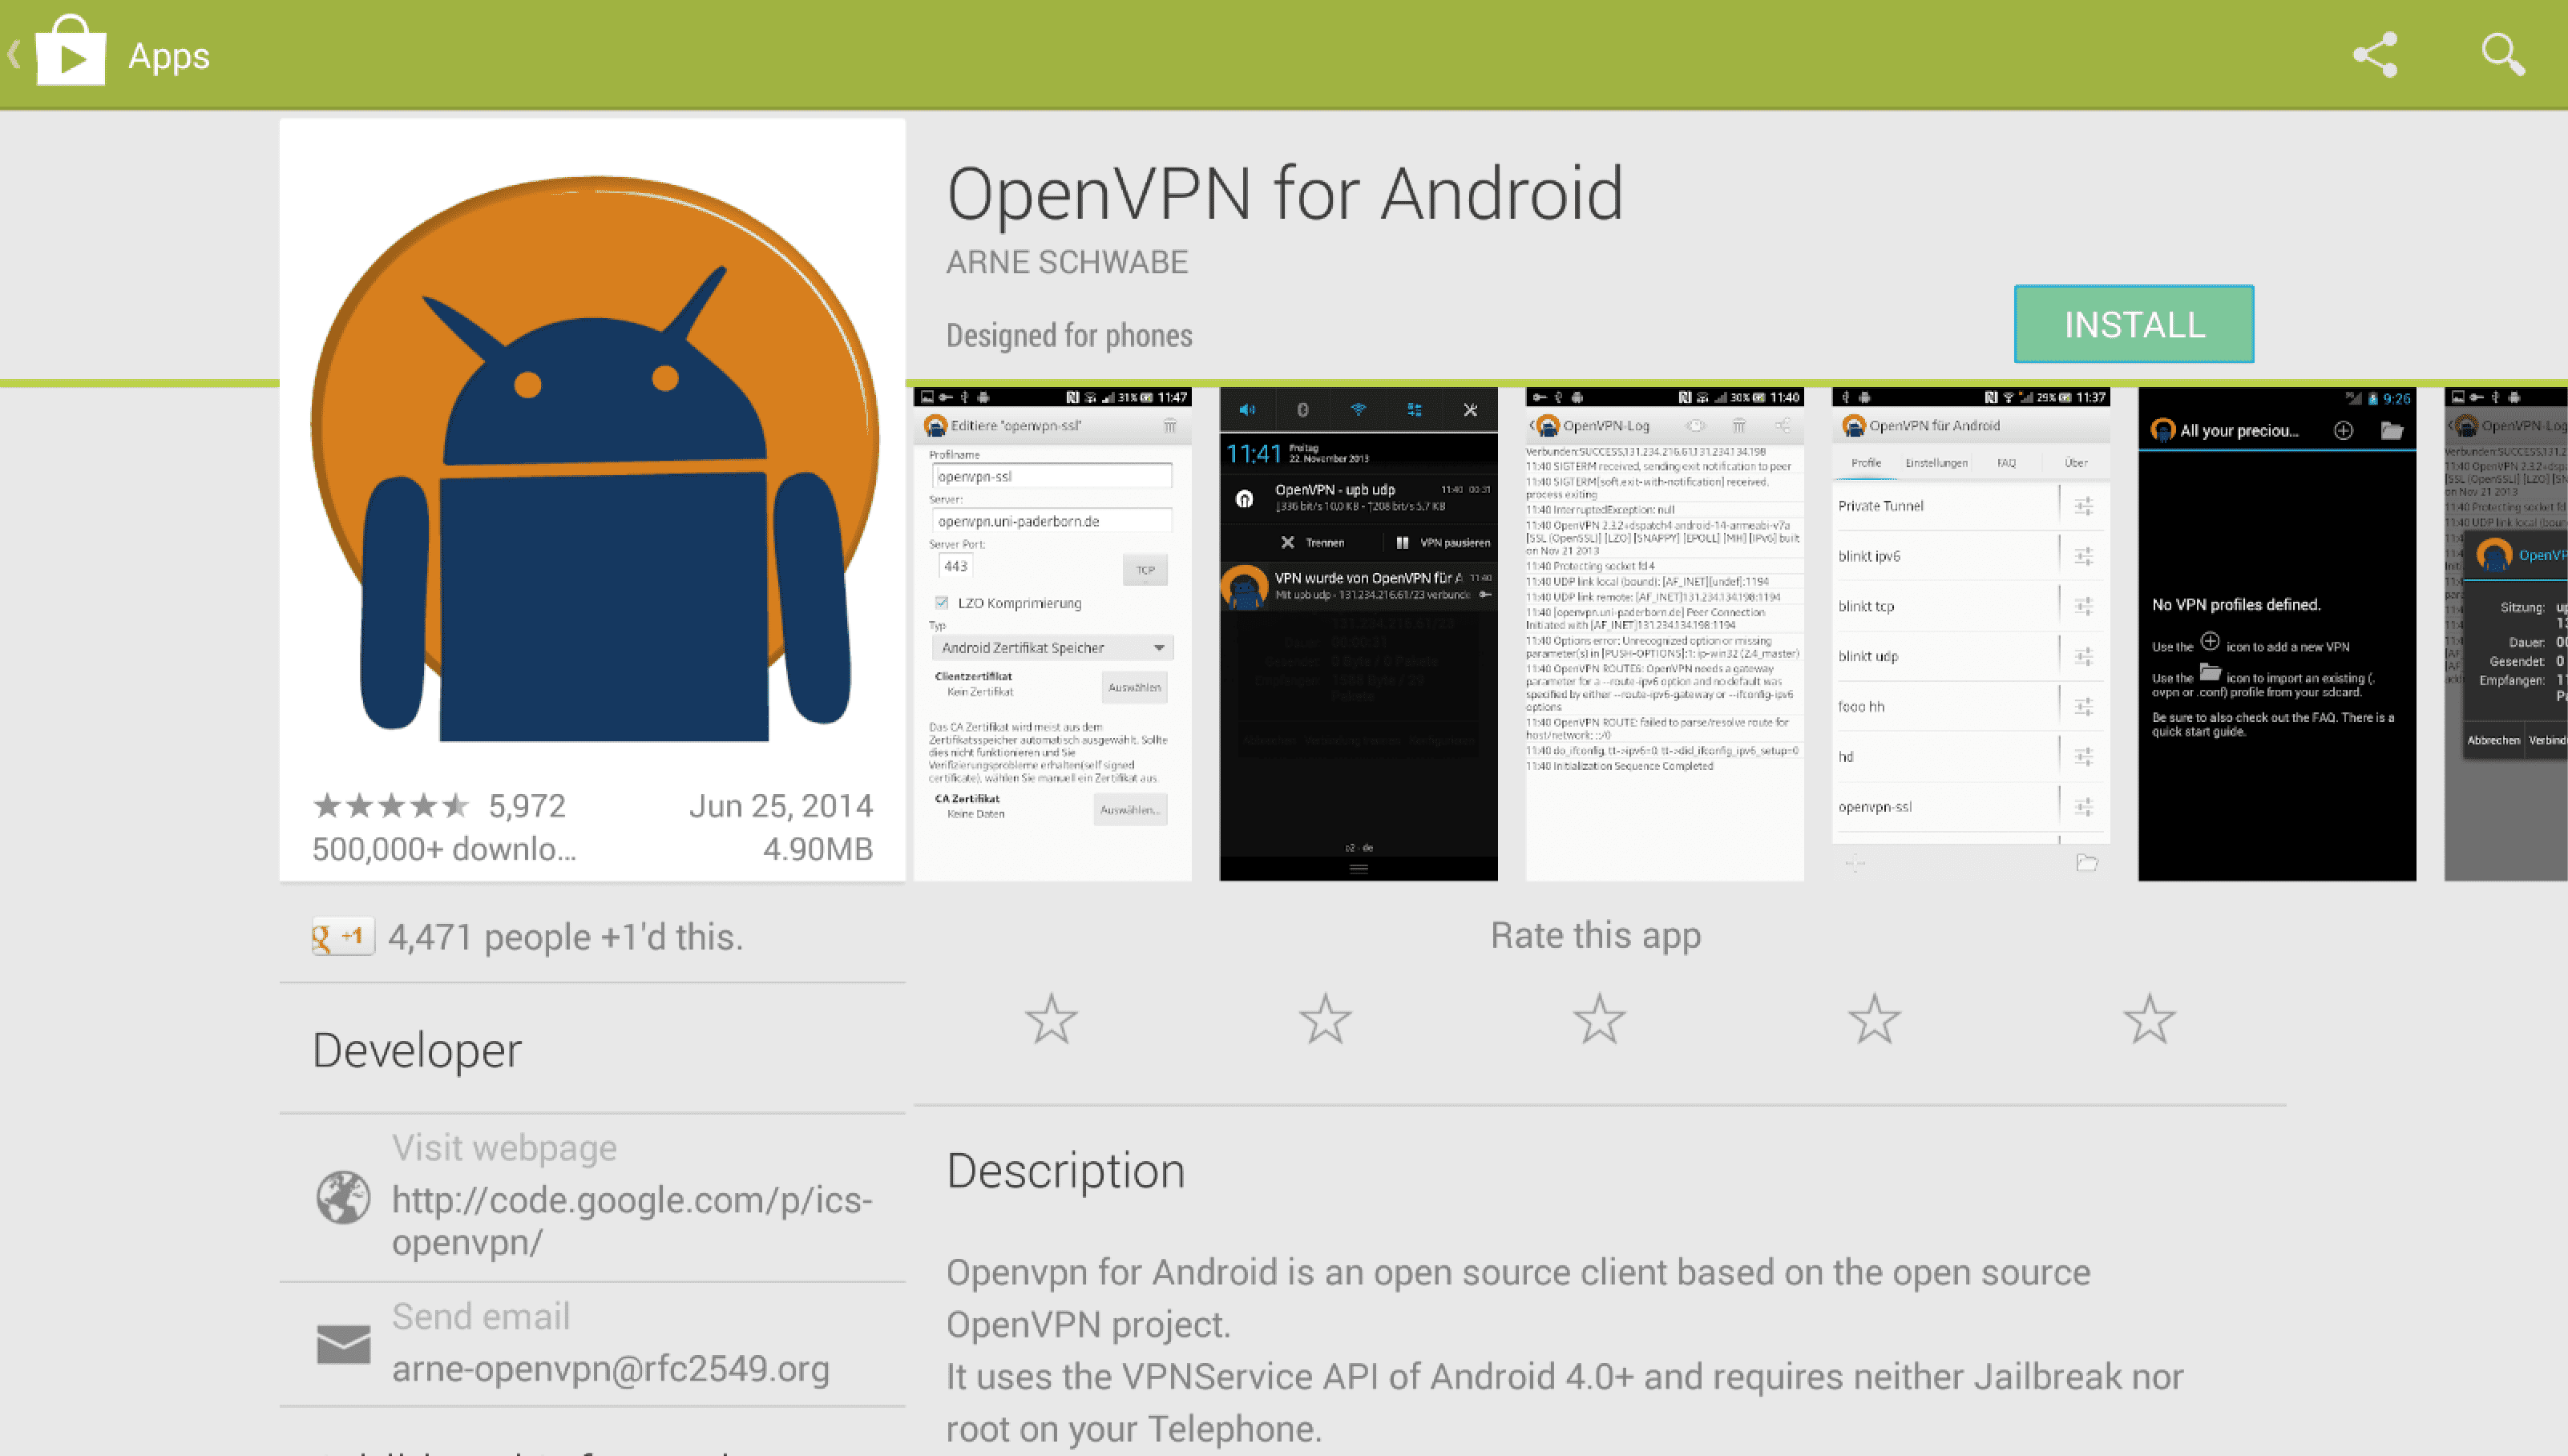 Download OpenVPN for Android via Google Play